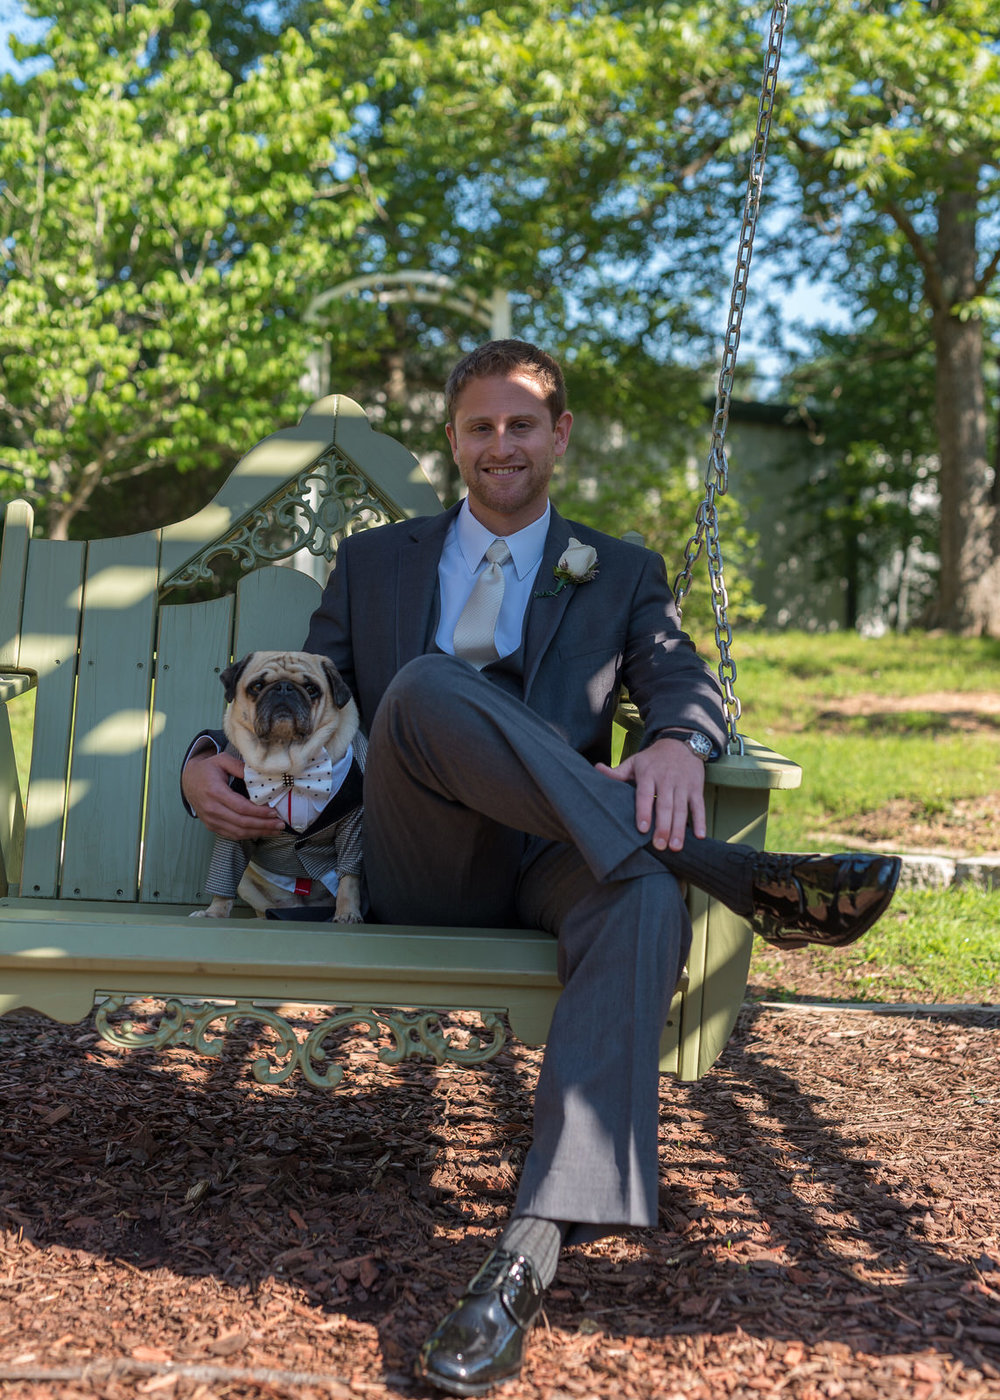 The Garden Swing, Groom and Pug